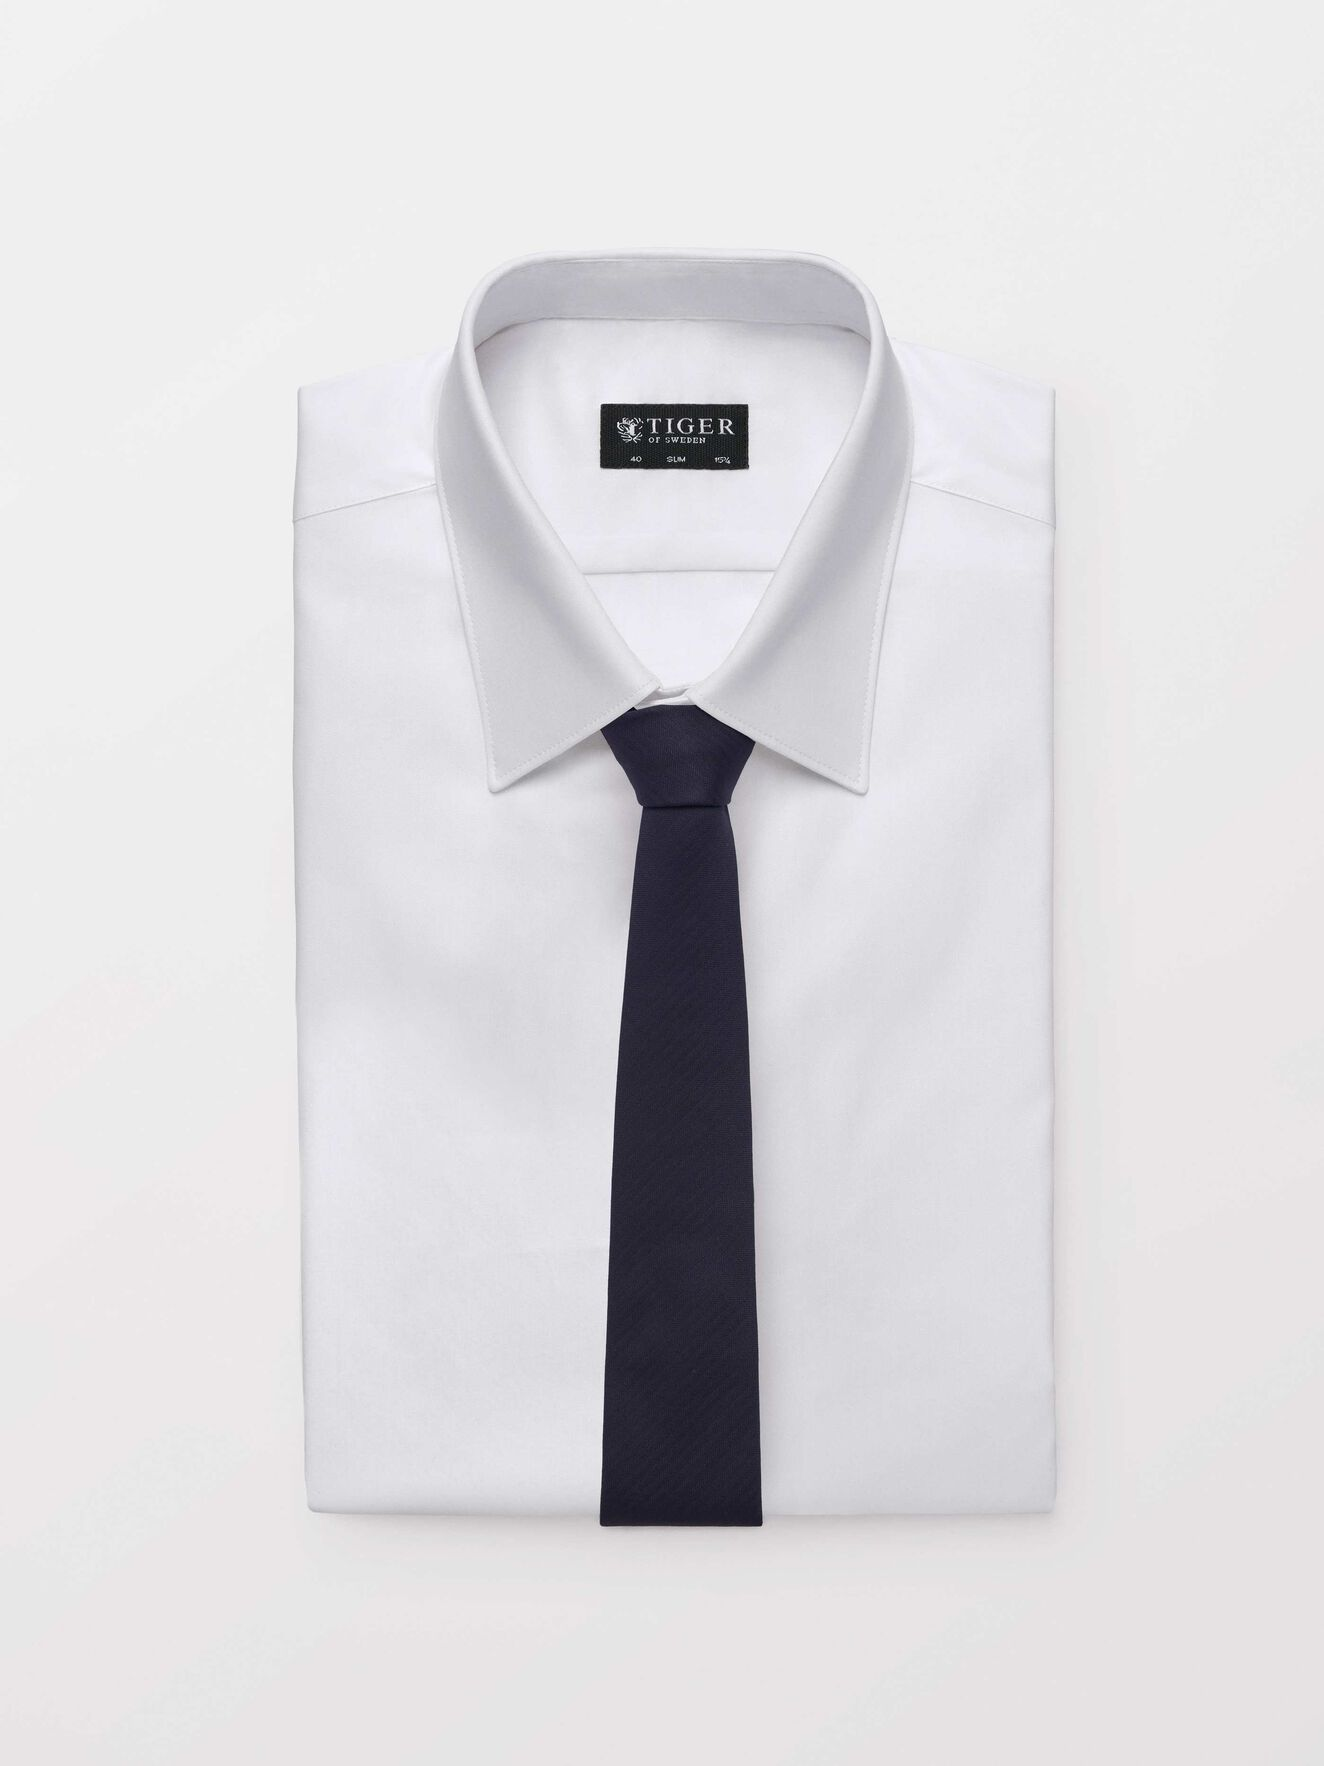 Trope Tie in Light Ink from Tiger of Sweden